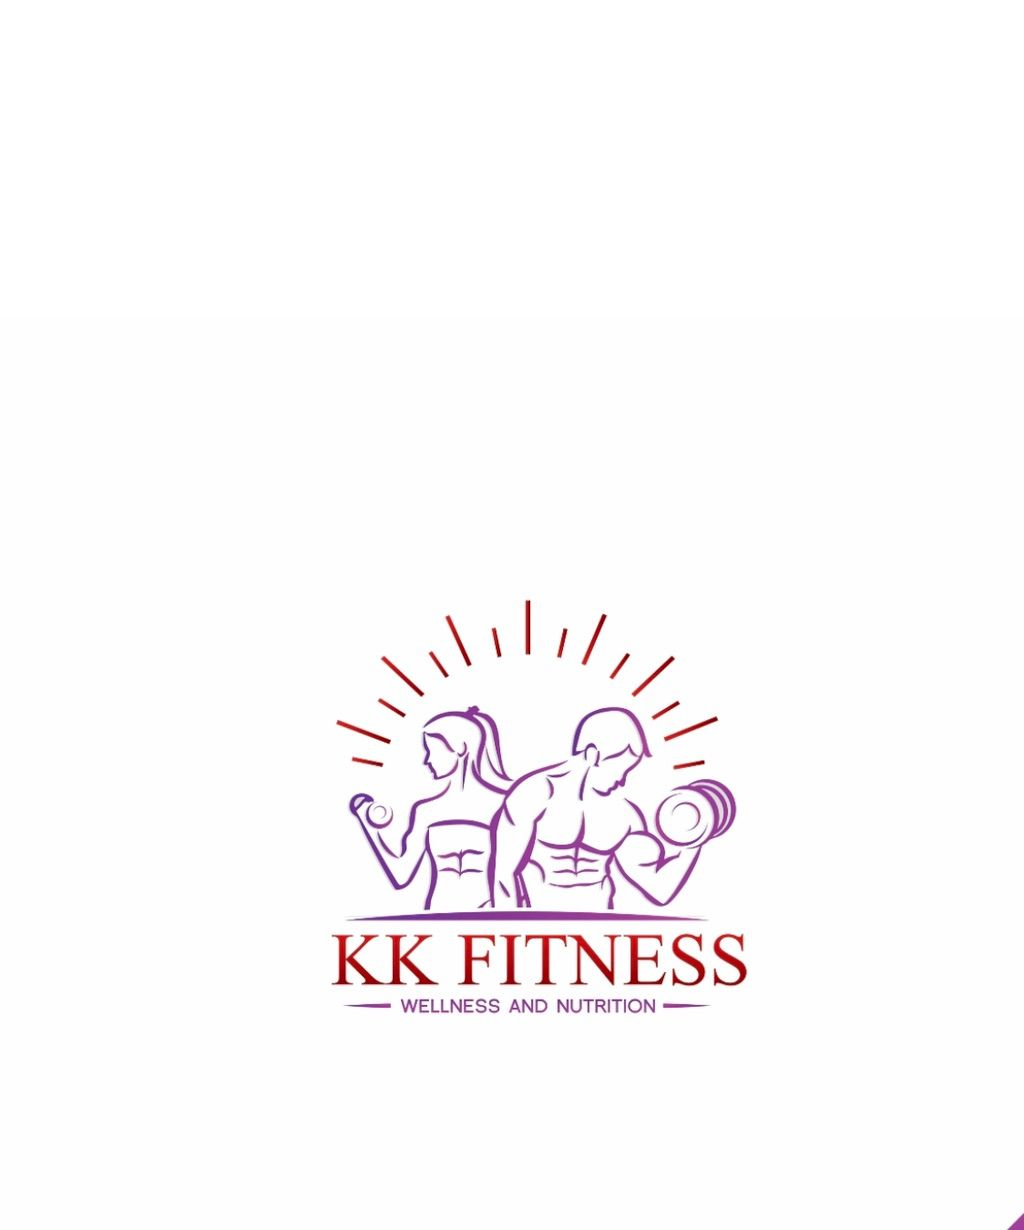 KK Fitness Wellness And Nutrition, CPT 30339